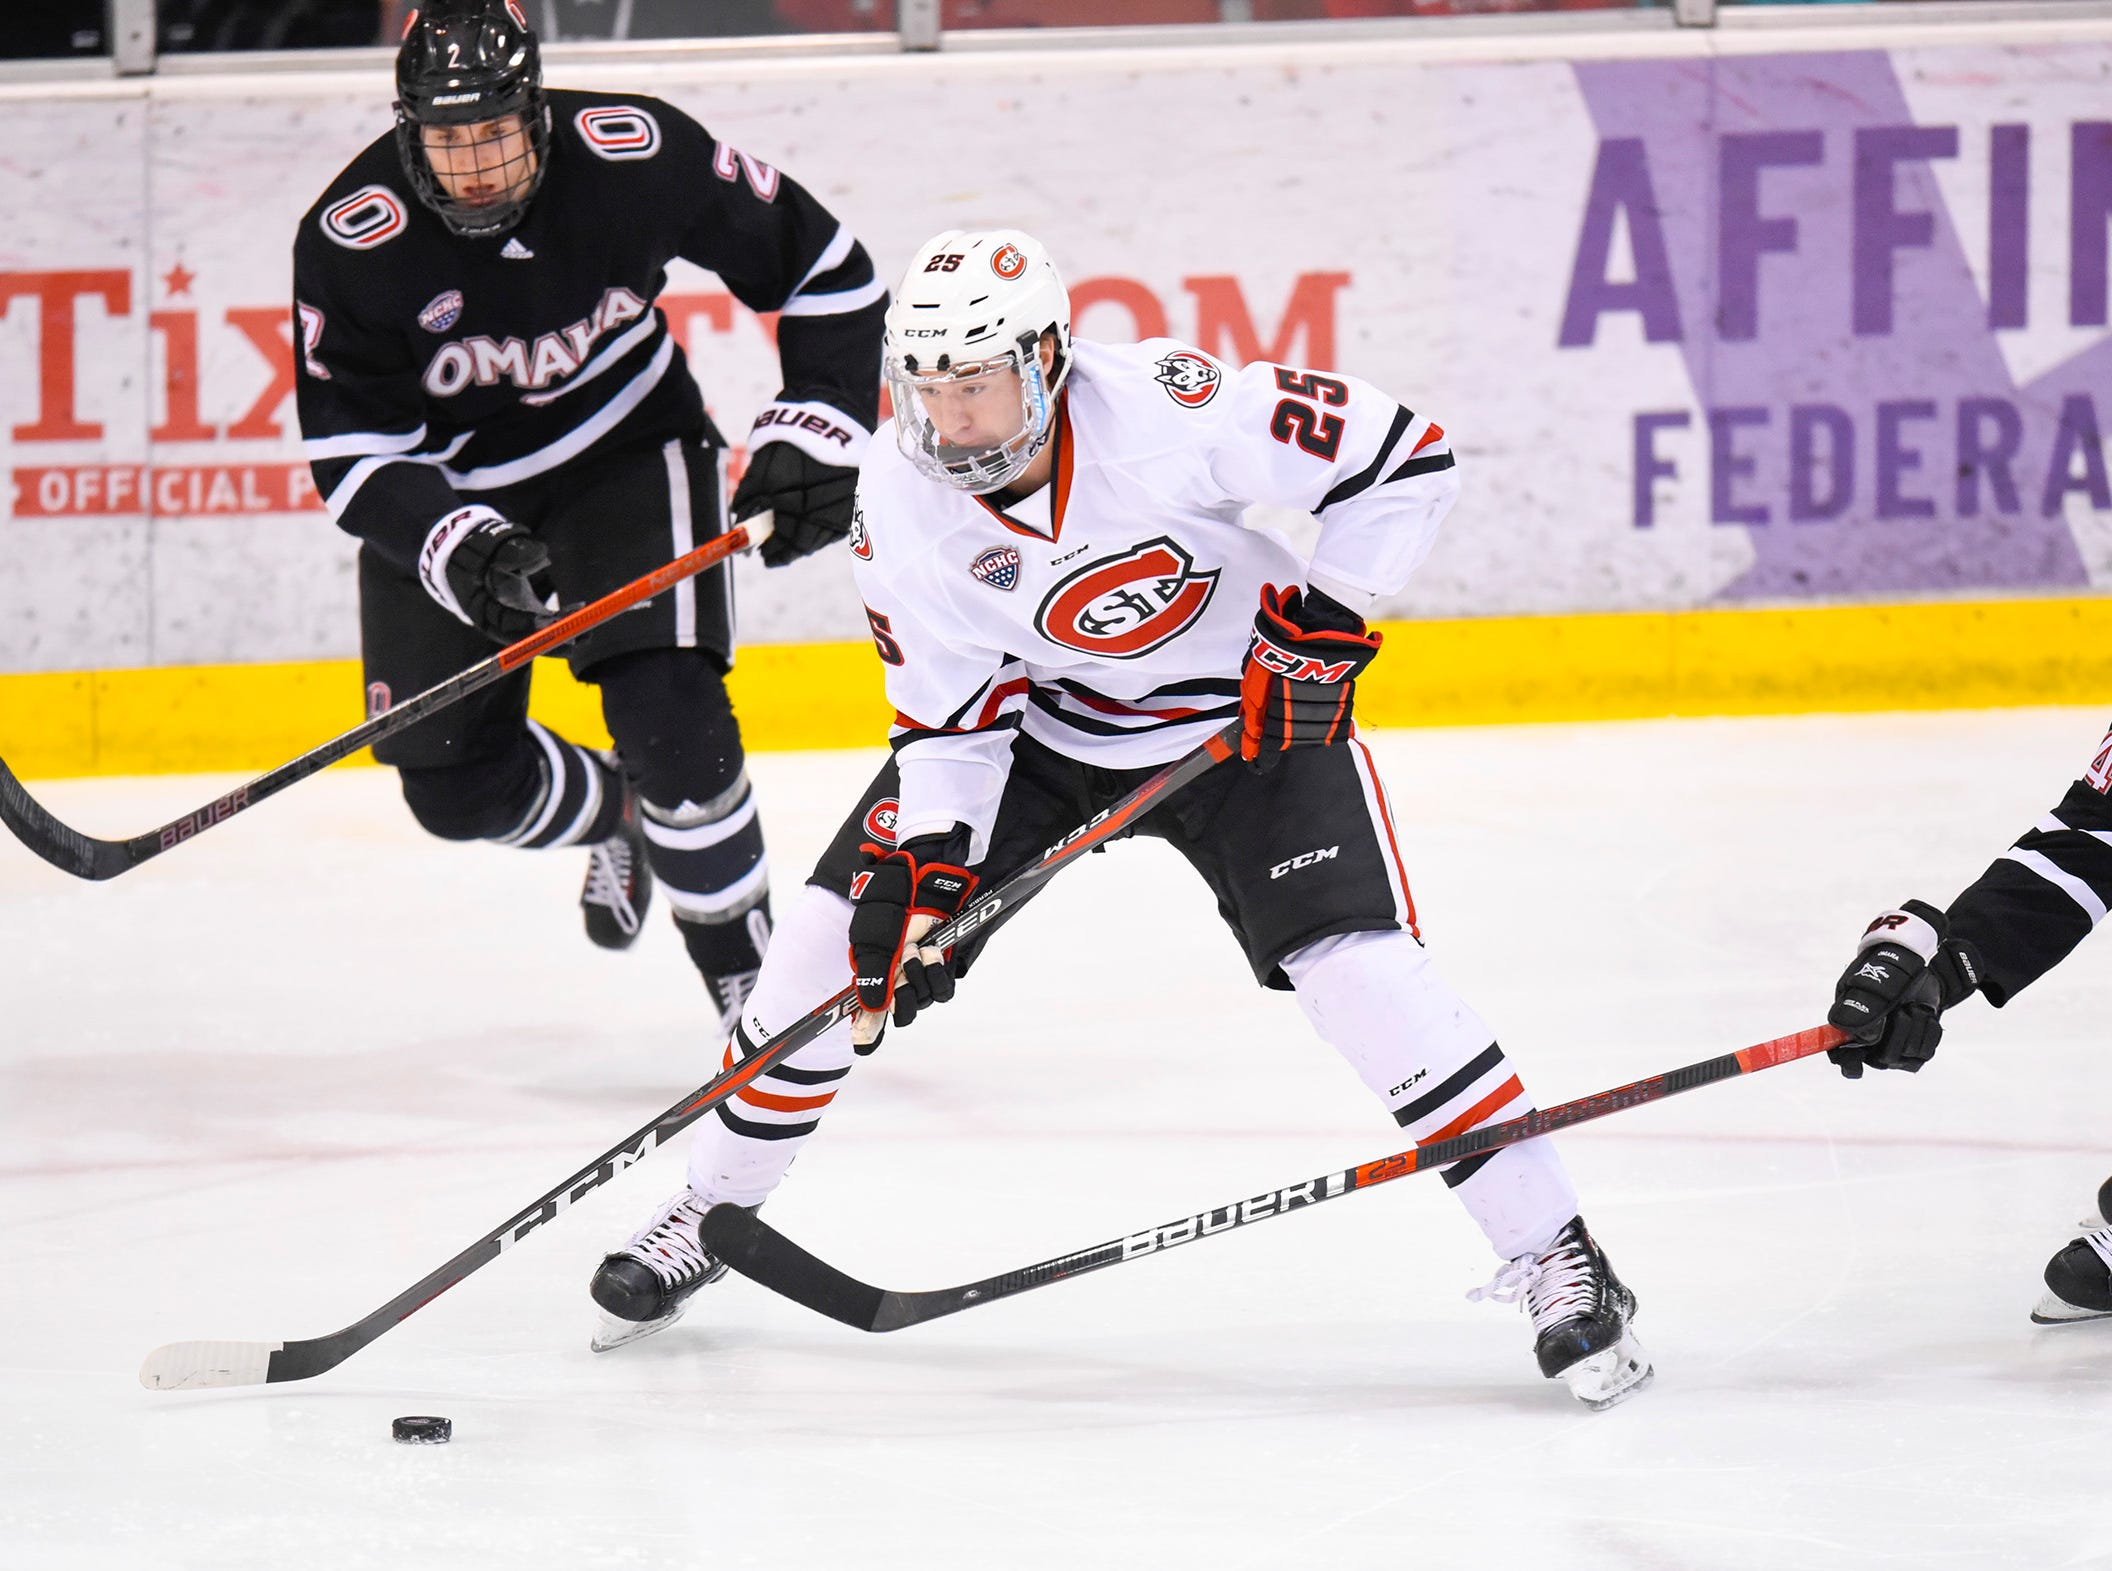 St. Cloud State's Nick Perbix skates toward the Nebraska-Omaha goal during the first period Saturday, Dec. 8, at the Herb Brooks National Hockey Center.